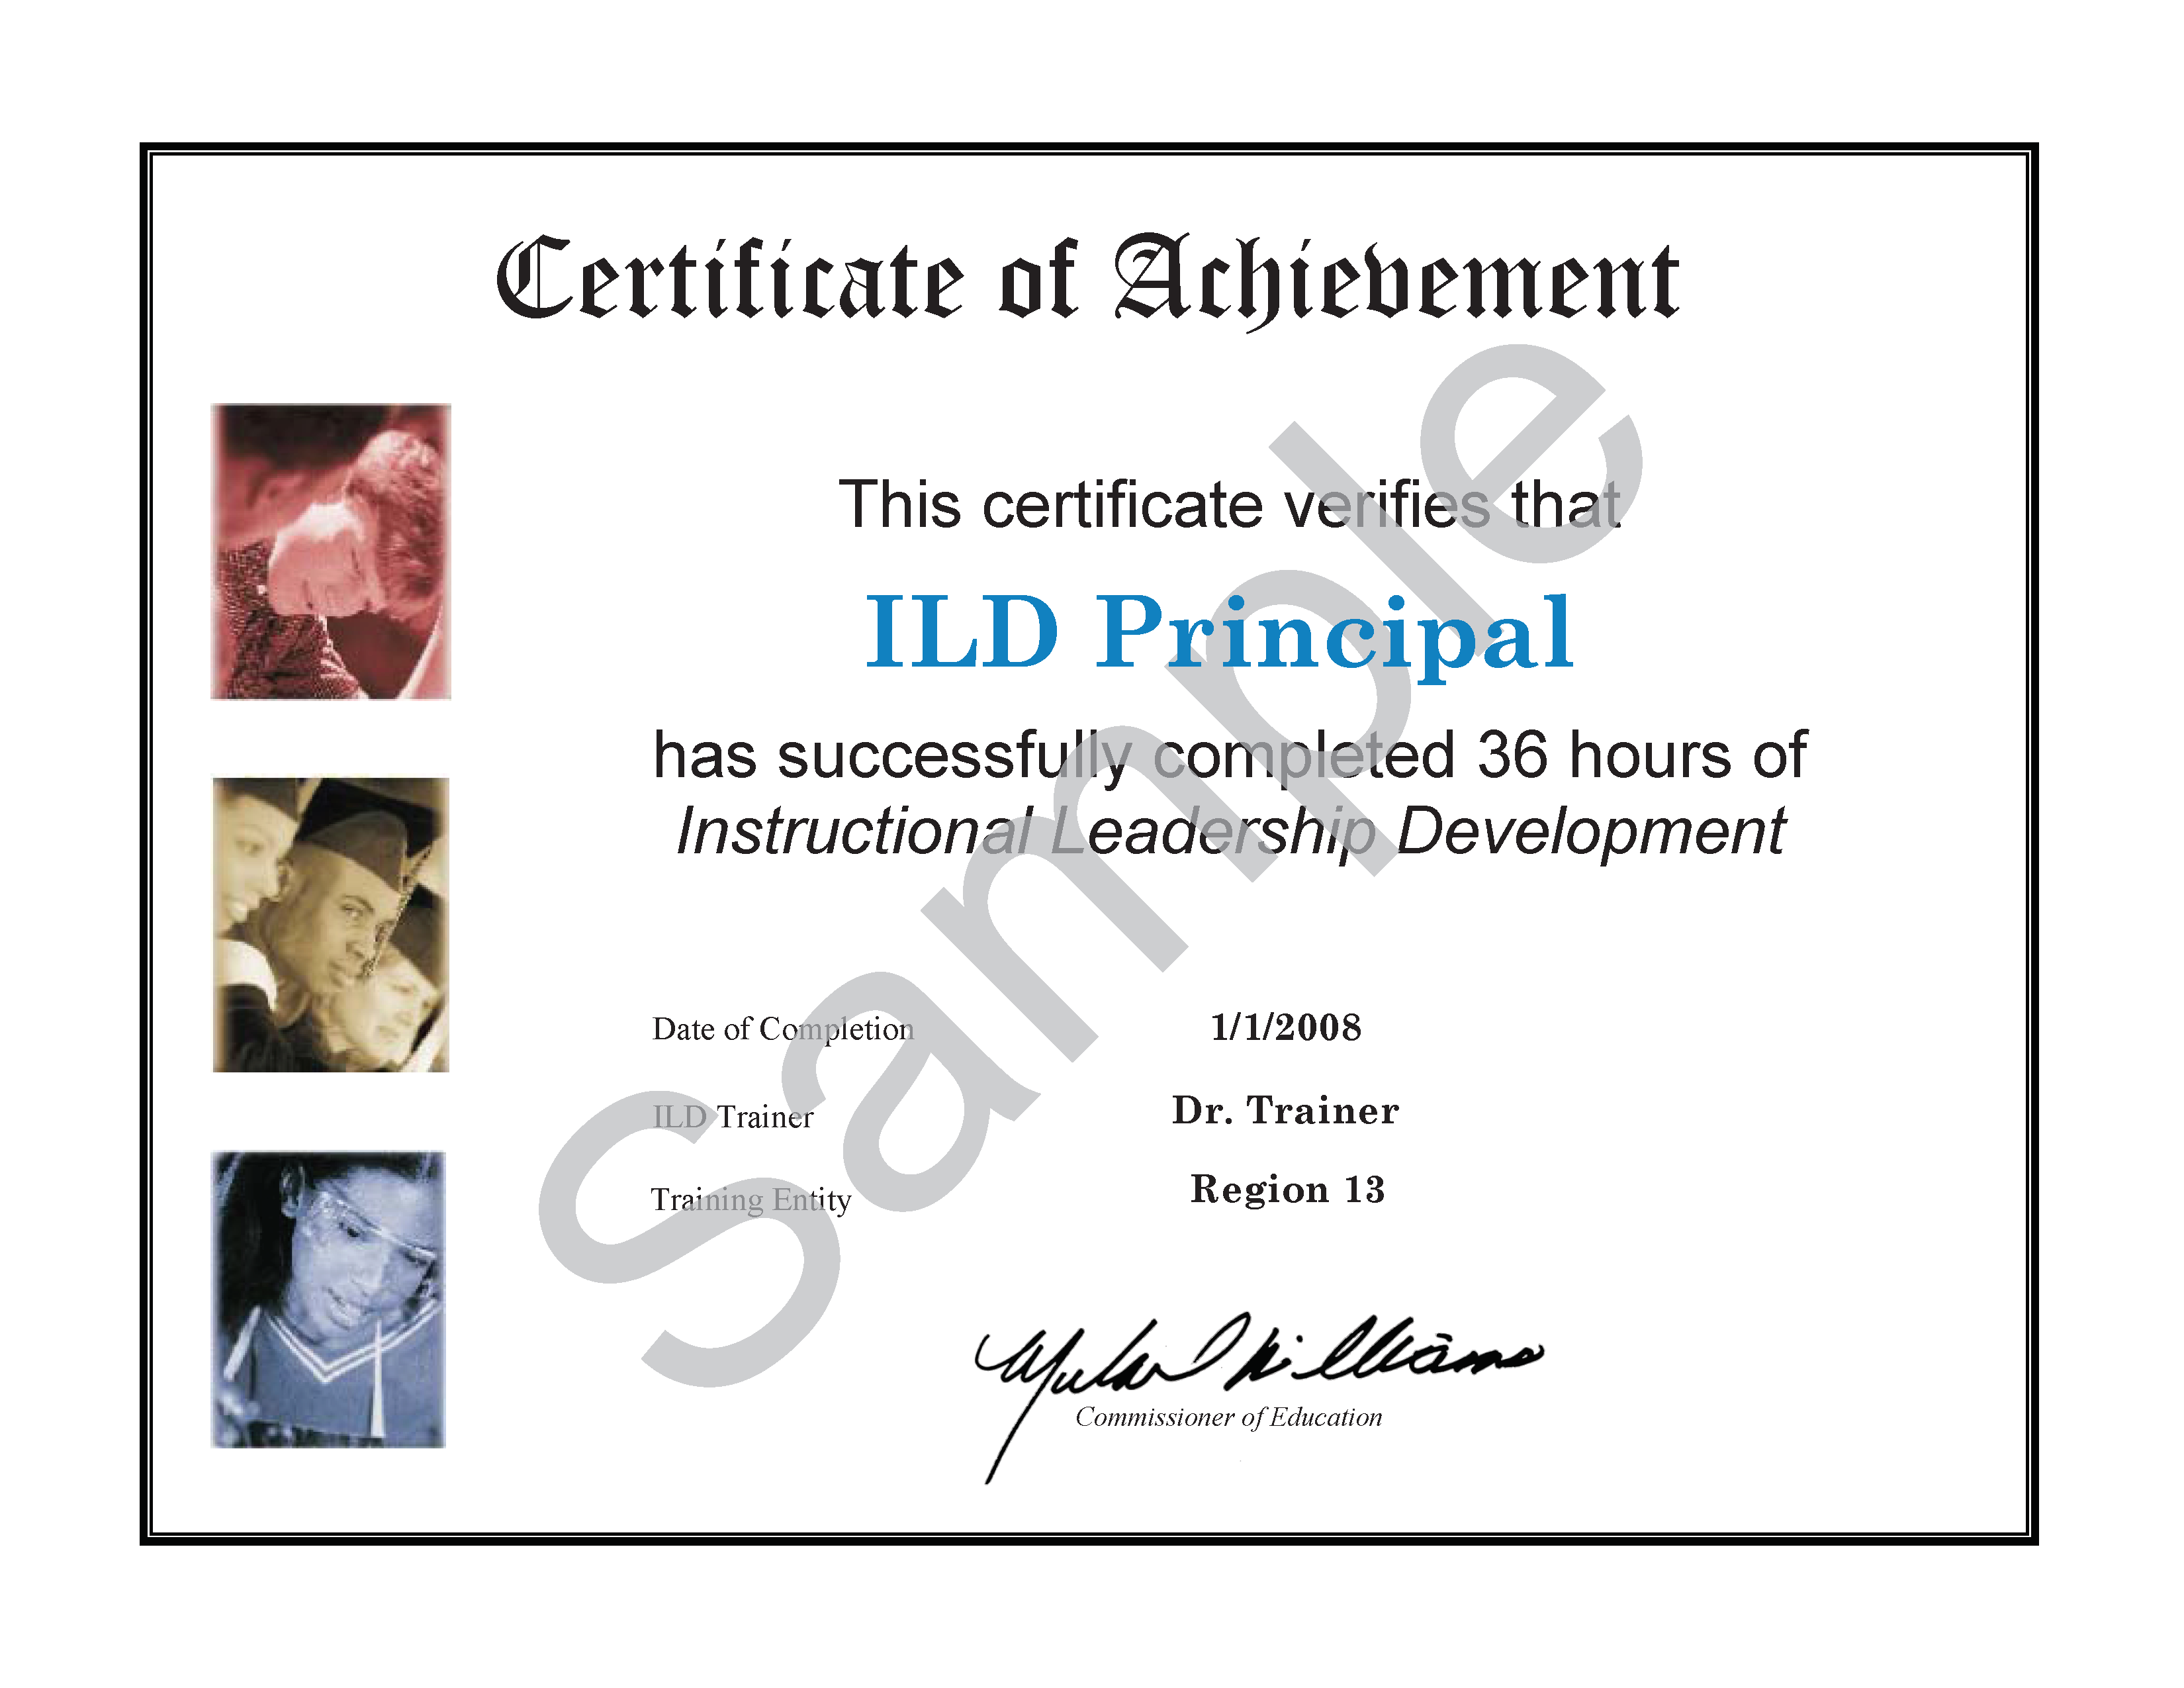 Fresh collection of training certificate business cards and ild certification lookup ael xflitez Images